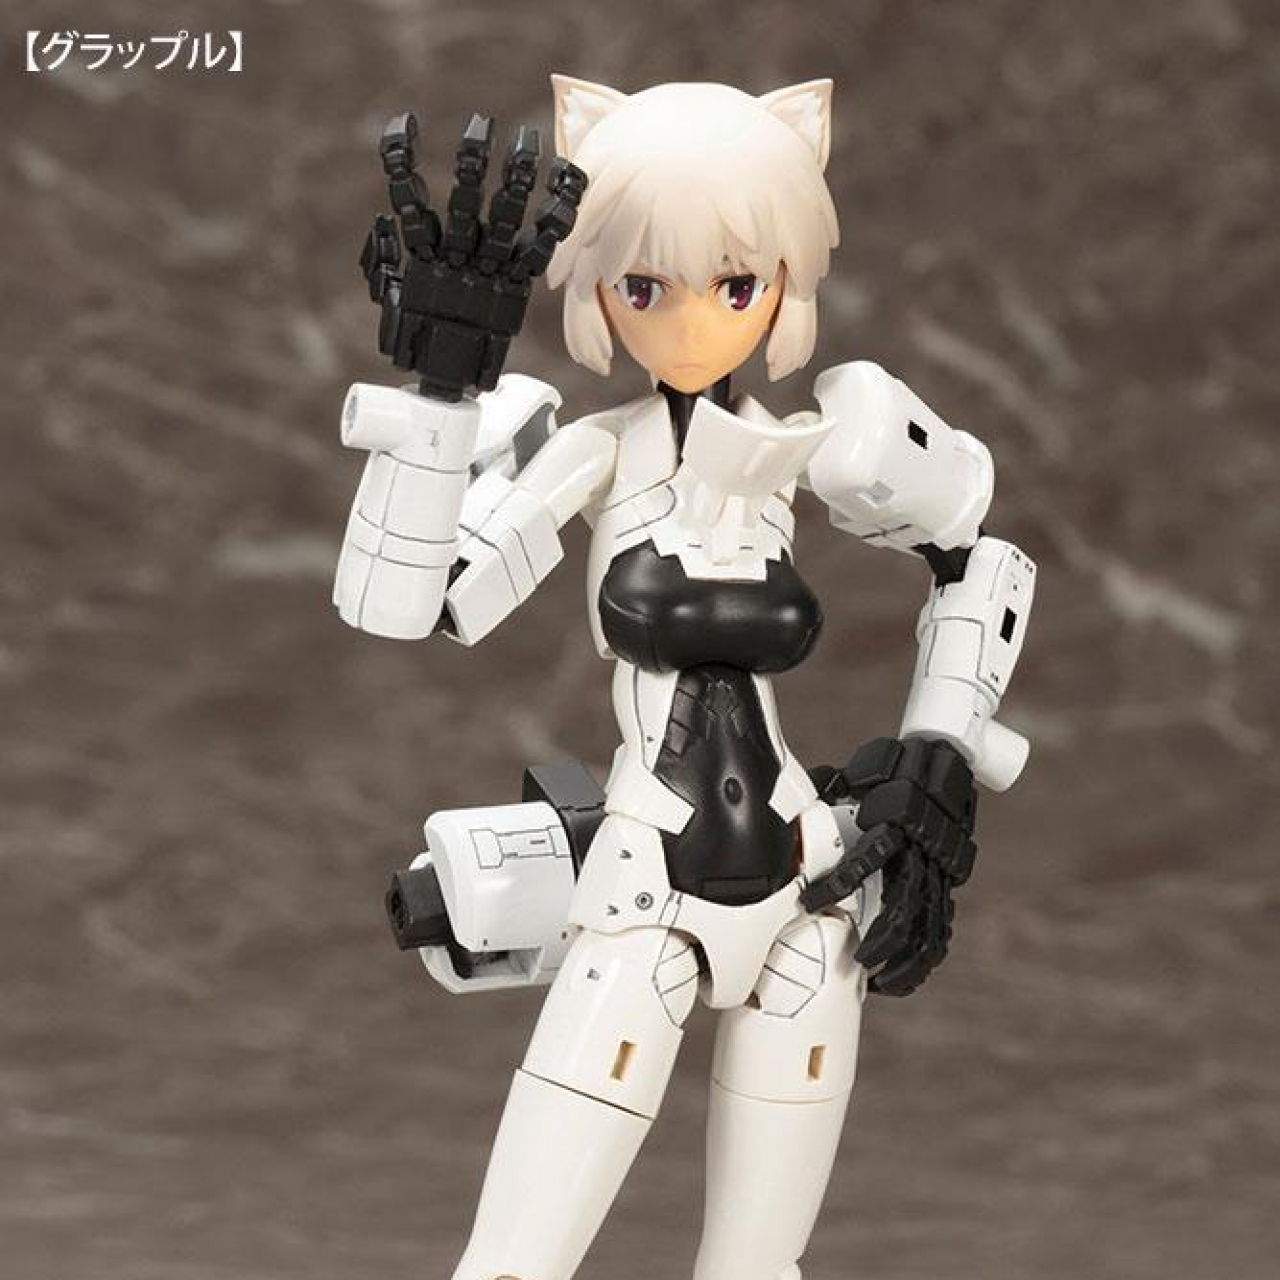 Megami Device Plastic Model Kit 1/1 Wism Soldier Snipe Grapple 14 cm